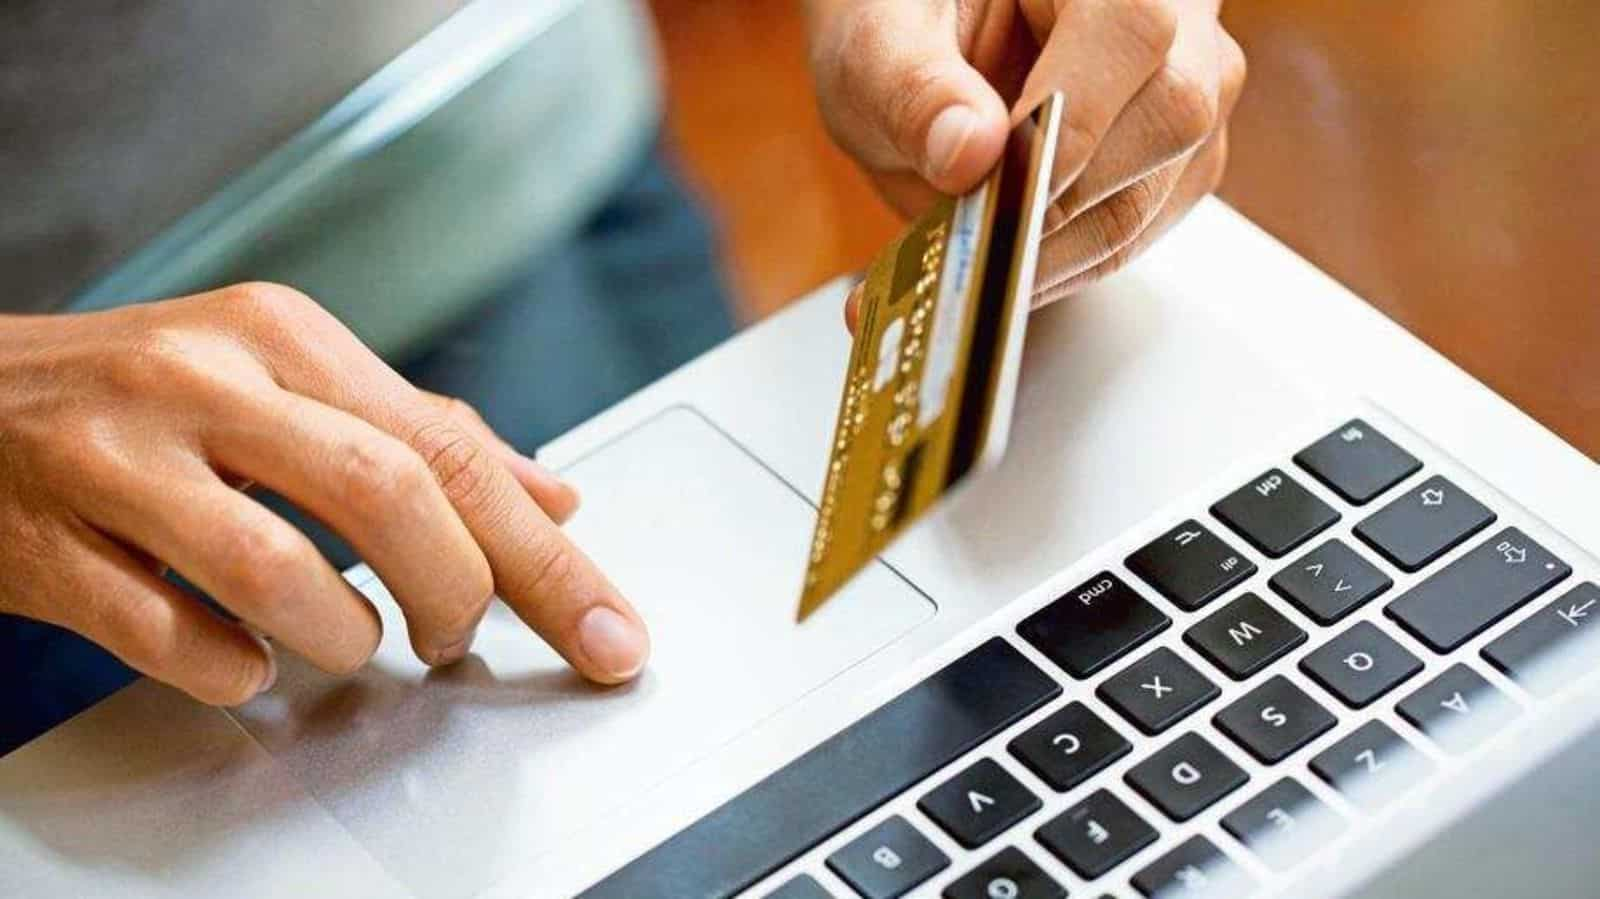 While running up credit card debt you can't immediately pay off is generally not a good idea, you may simply need a new ca. Unable To Pay Credit Card Bill Before Due Date Here S What You Should Do